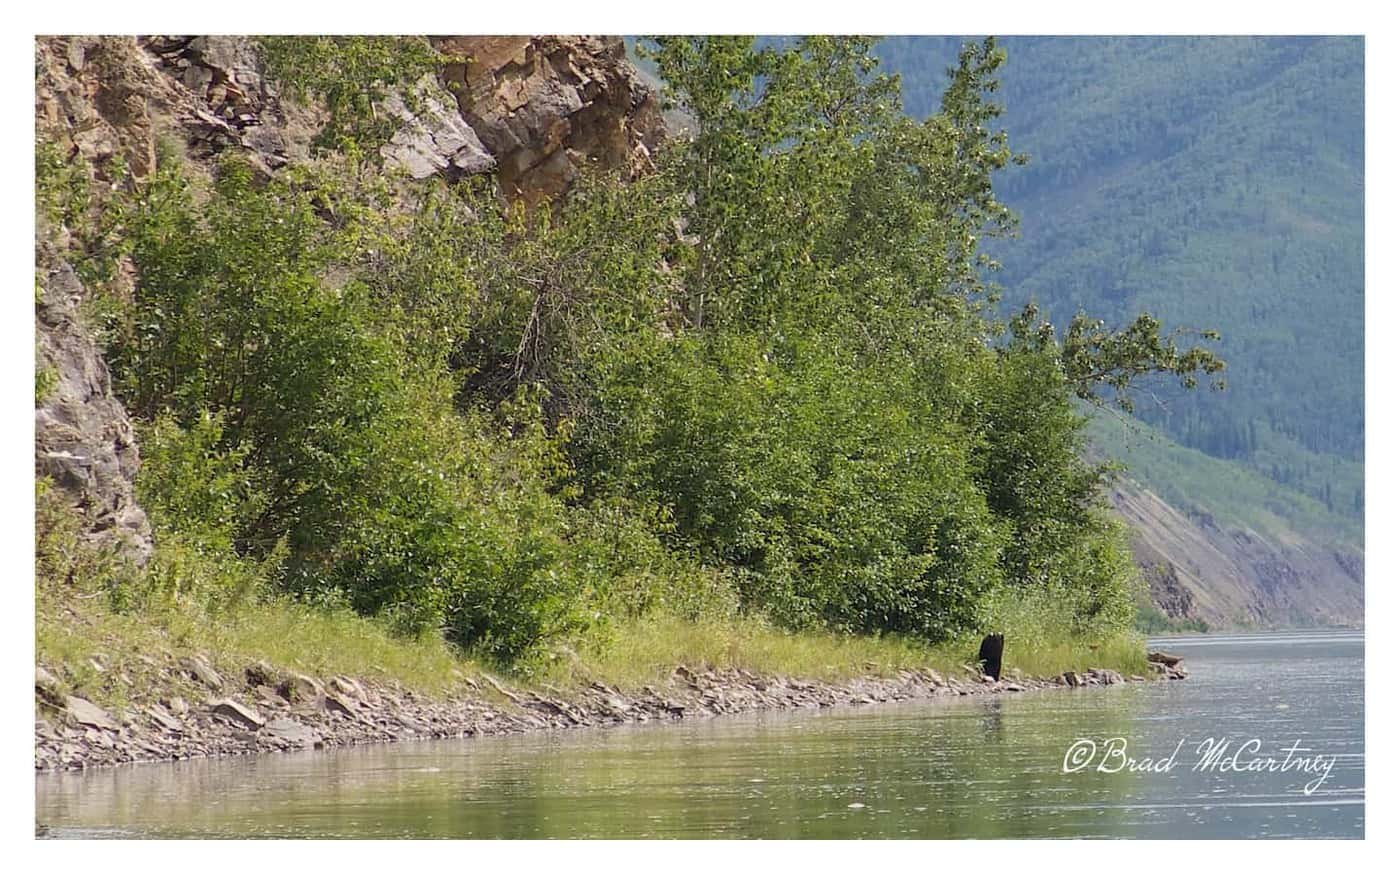 I canoed past this Black Bear and didn't see it until I passed it, then it took off upstream